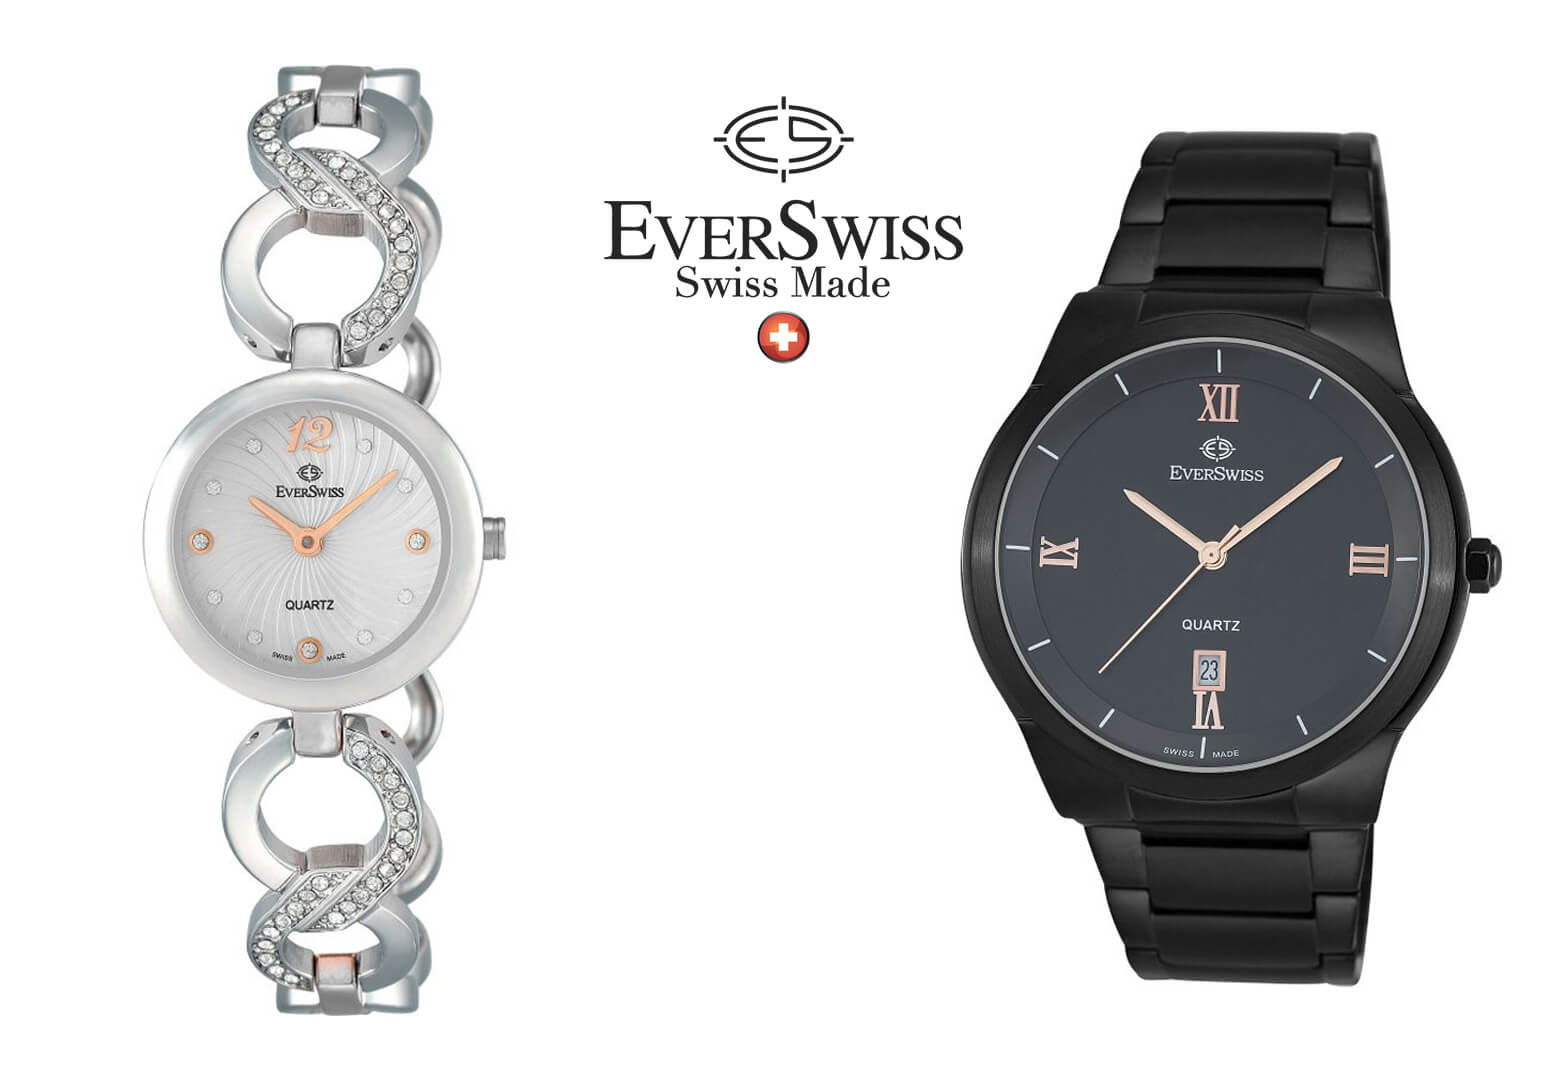 Pictured: Ladies EverSwiss Watch and Men's EverSwiss Watch